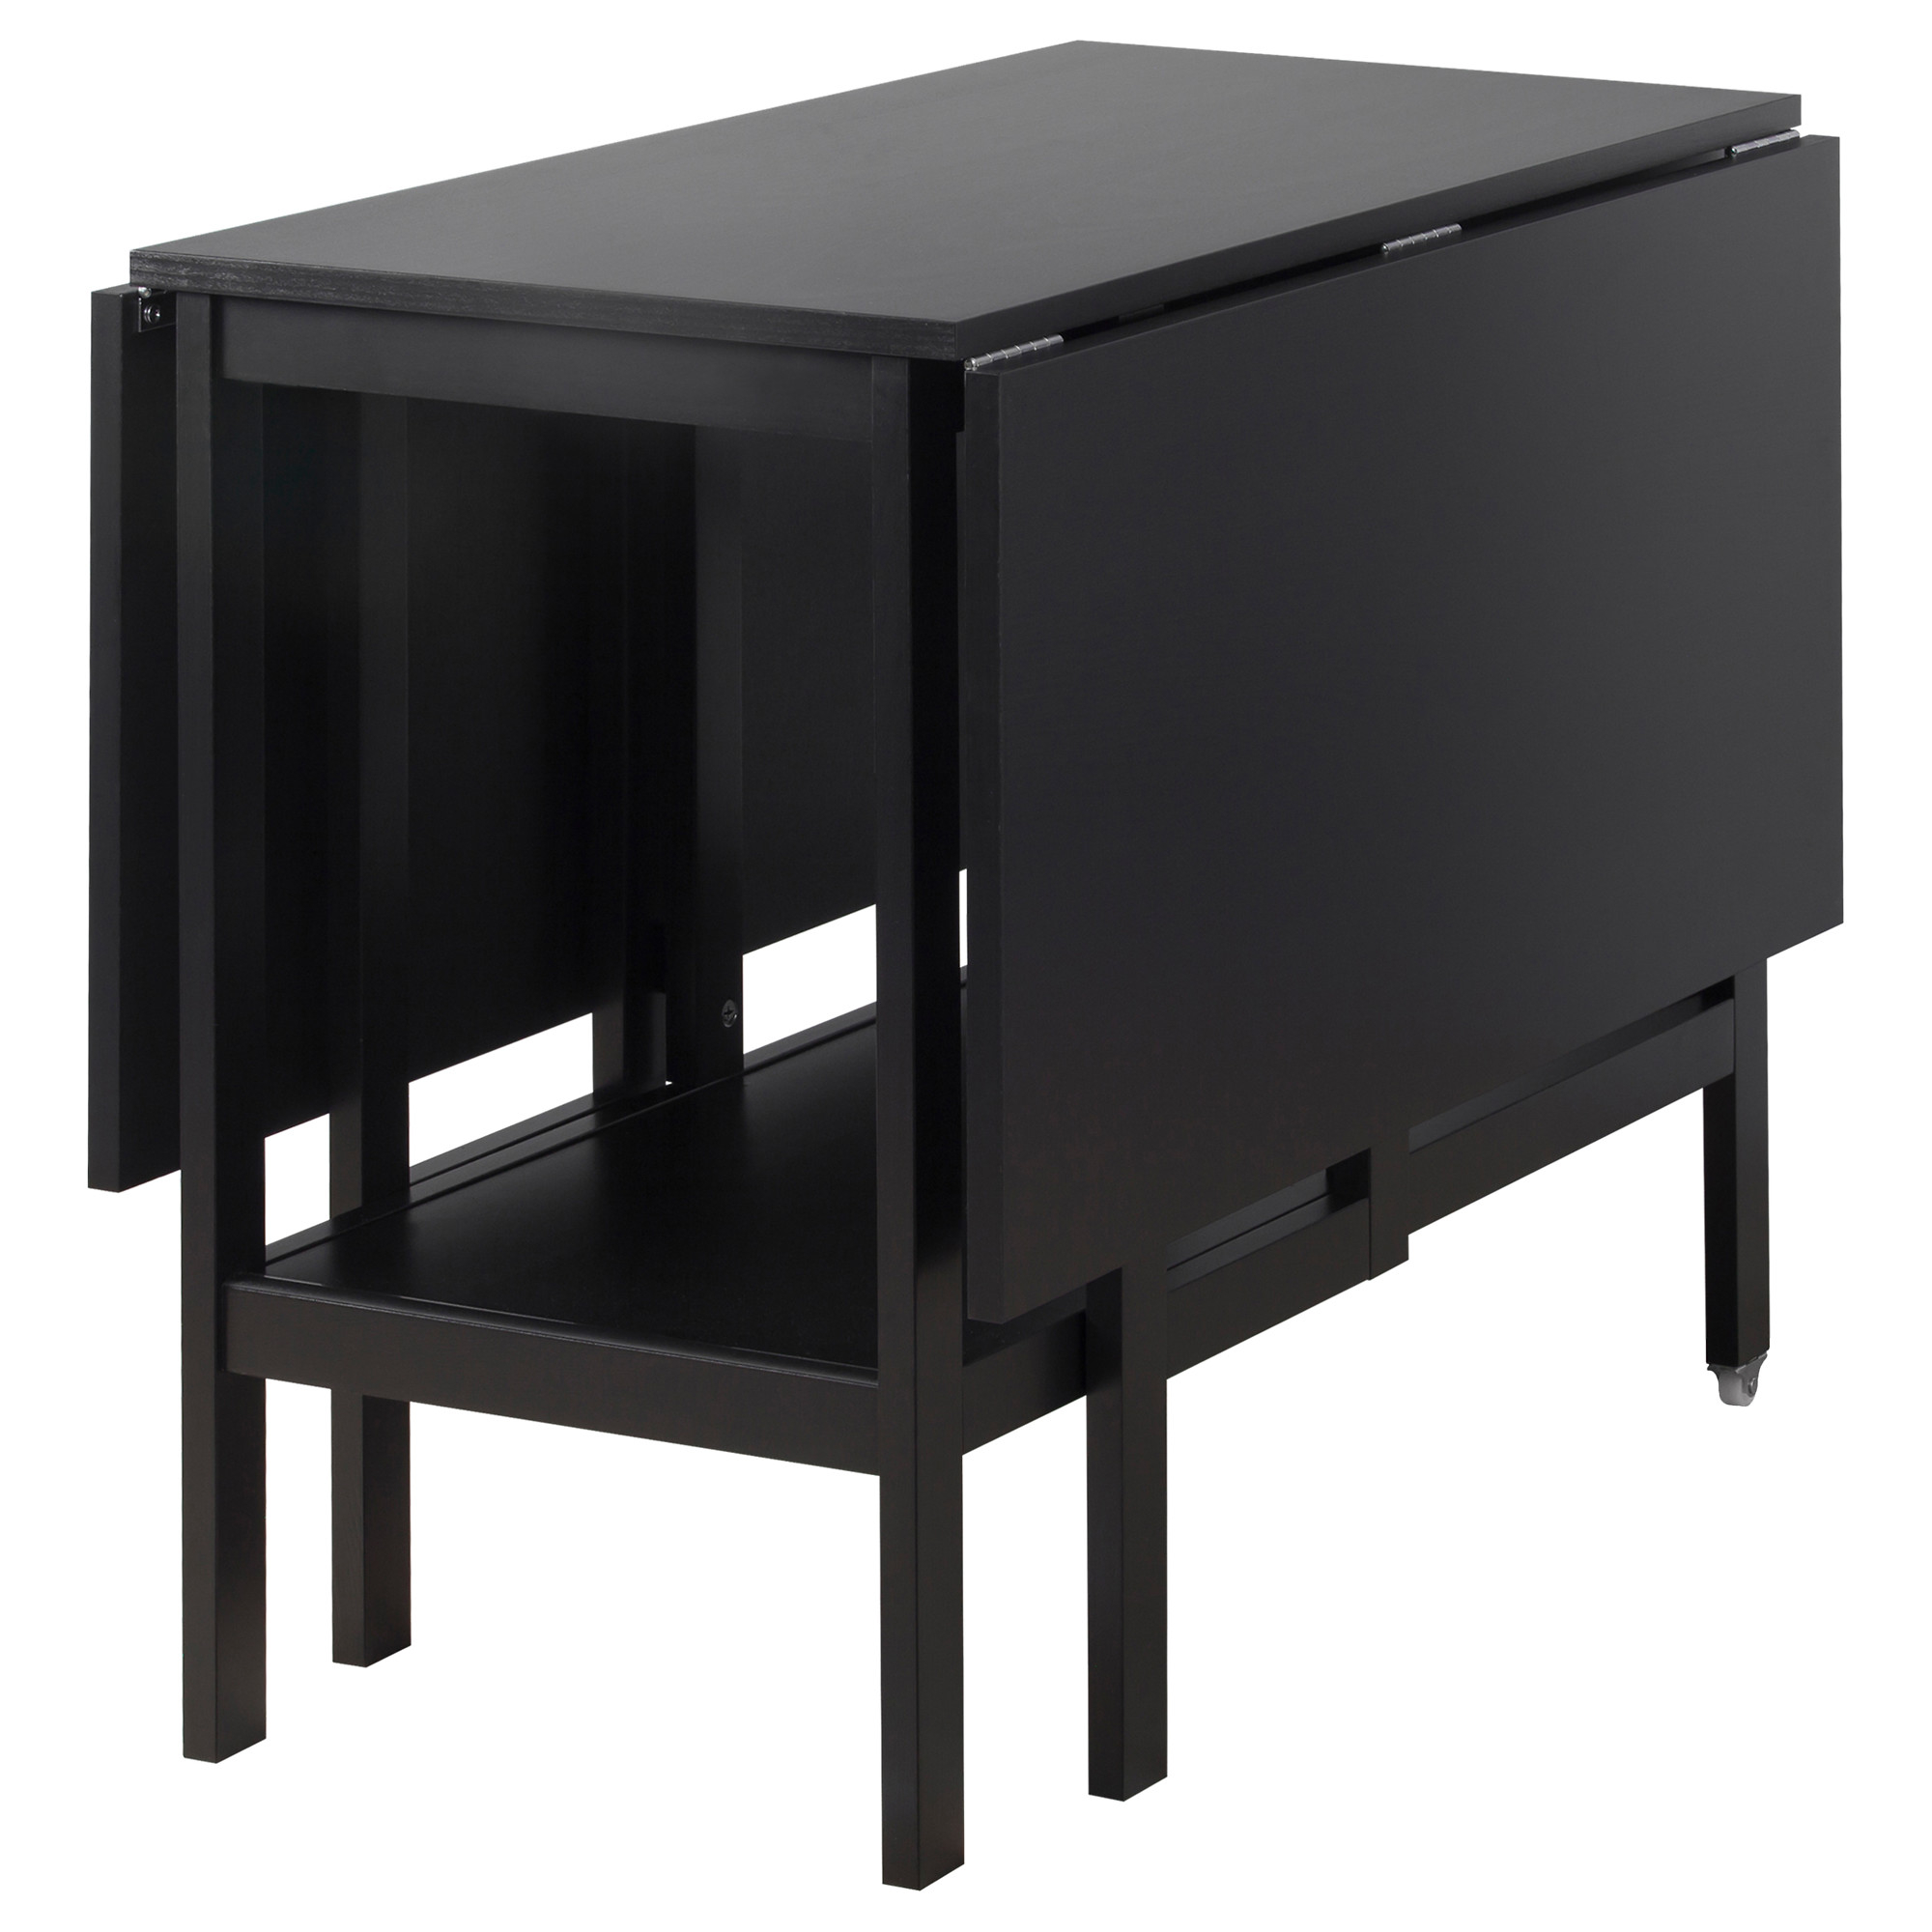 Fold Away Table And Chairs Ideas With Images inside sizing 2000 X 2000